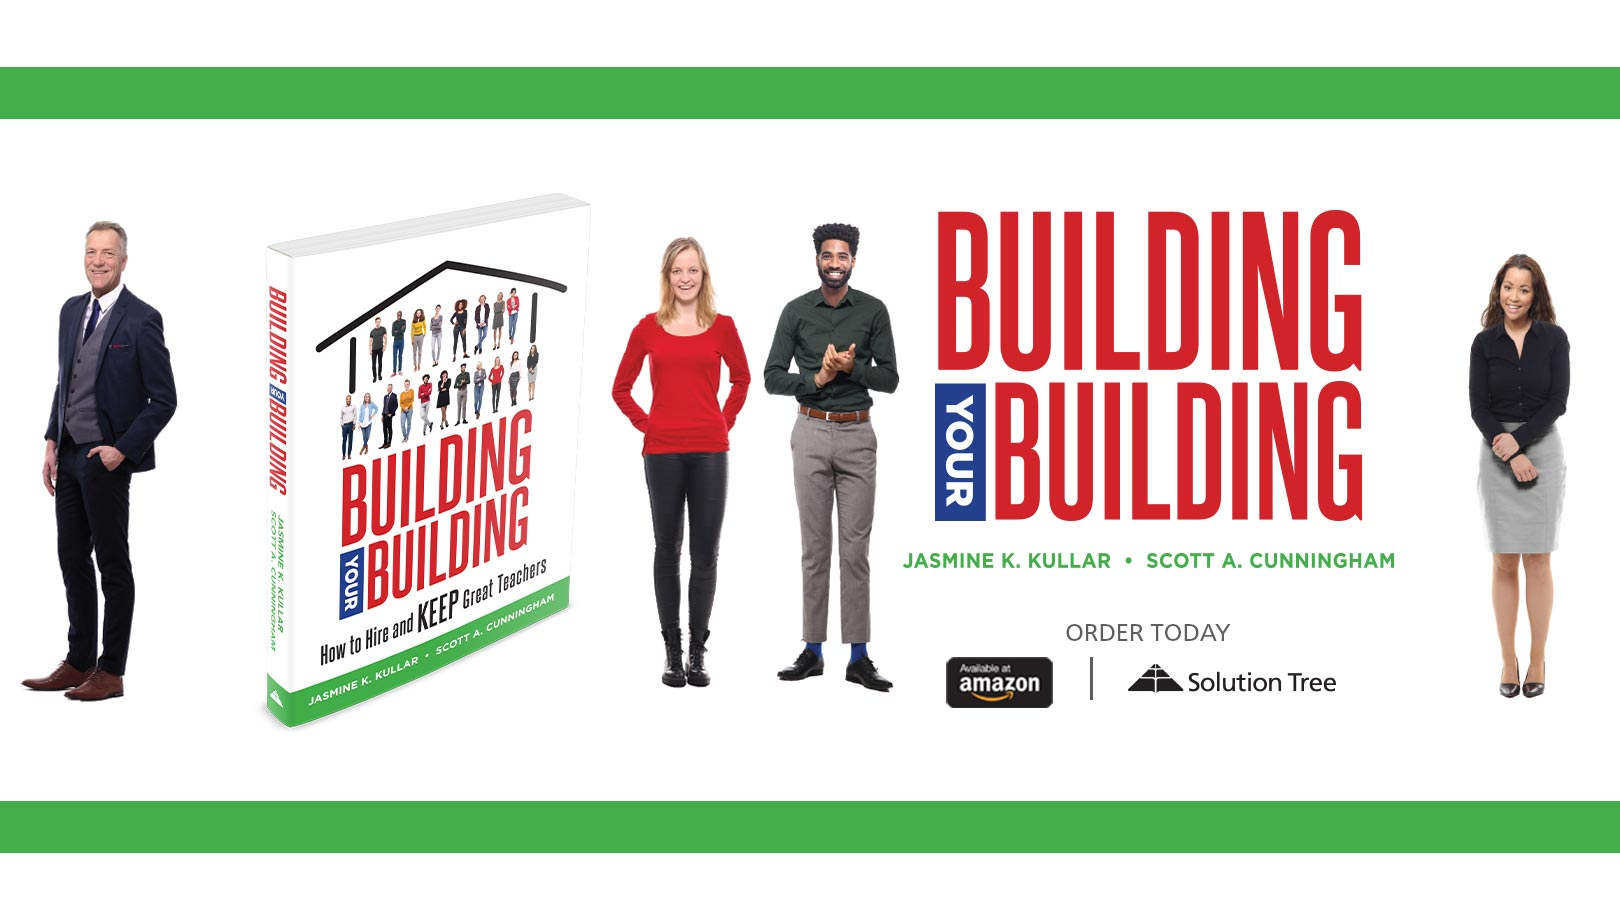 Building Your Building by Jasmine Kullar is available for purchase at Amazon and SolutionTree.com